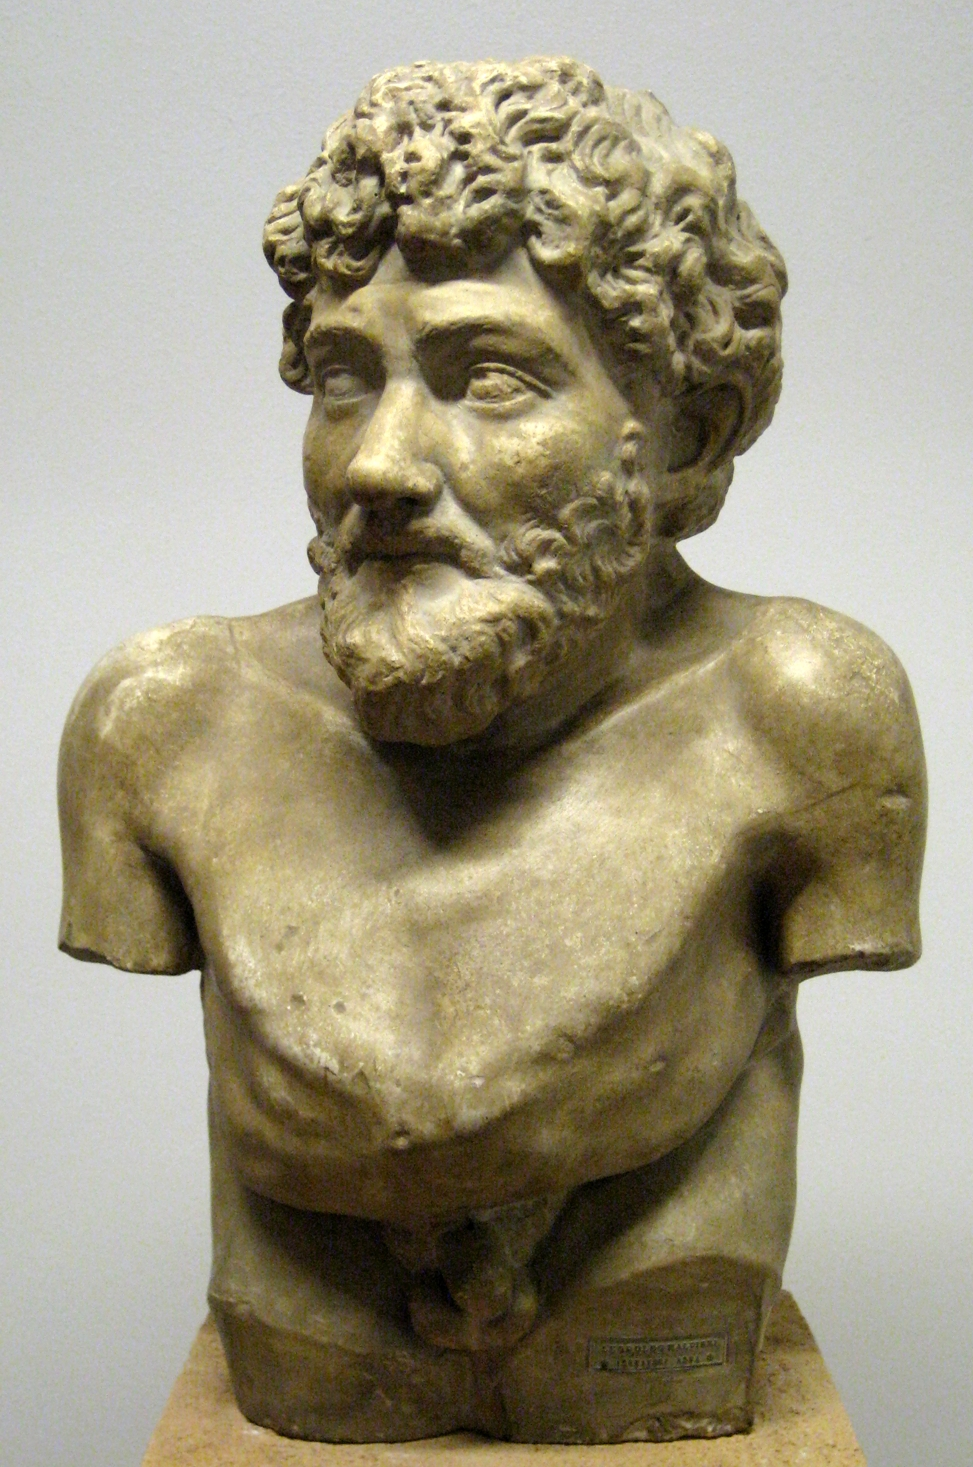 Portrait of Aesop